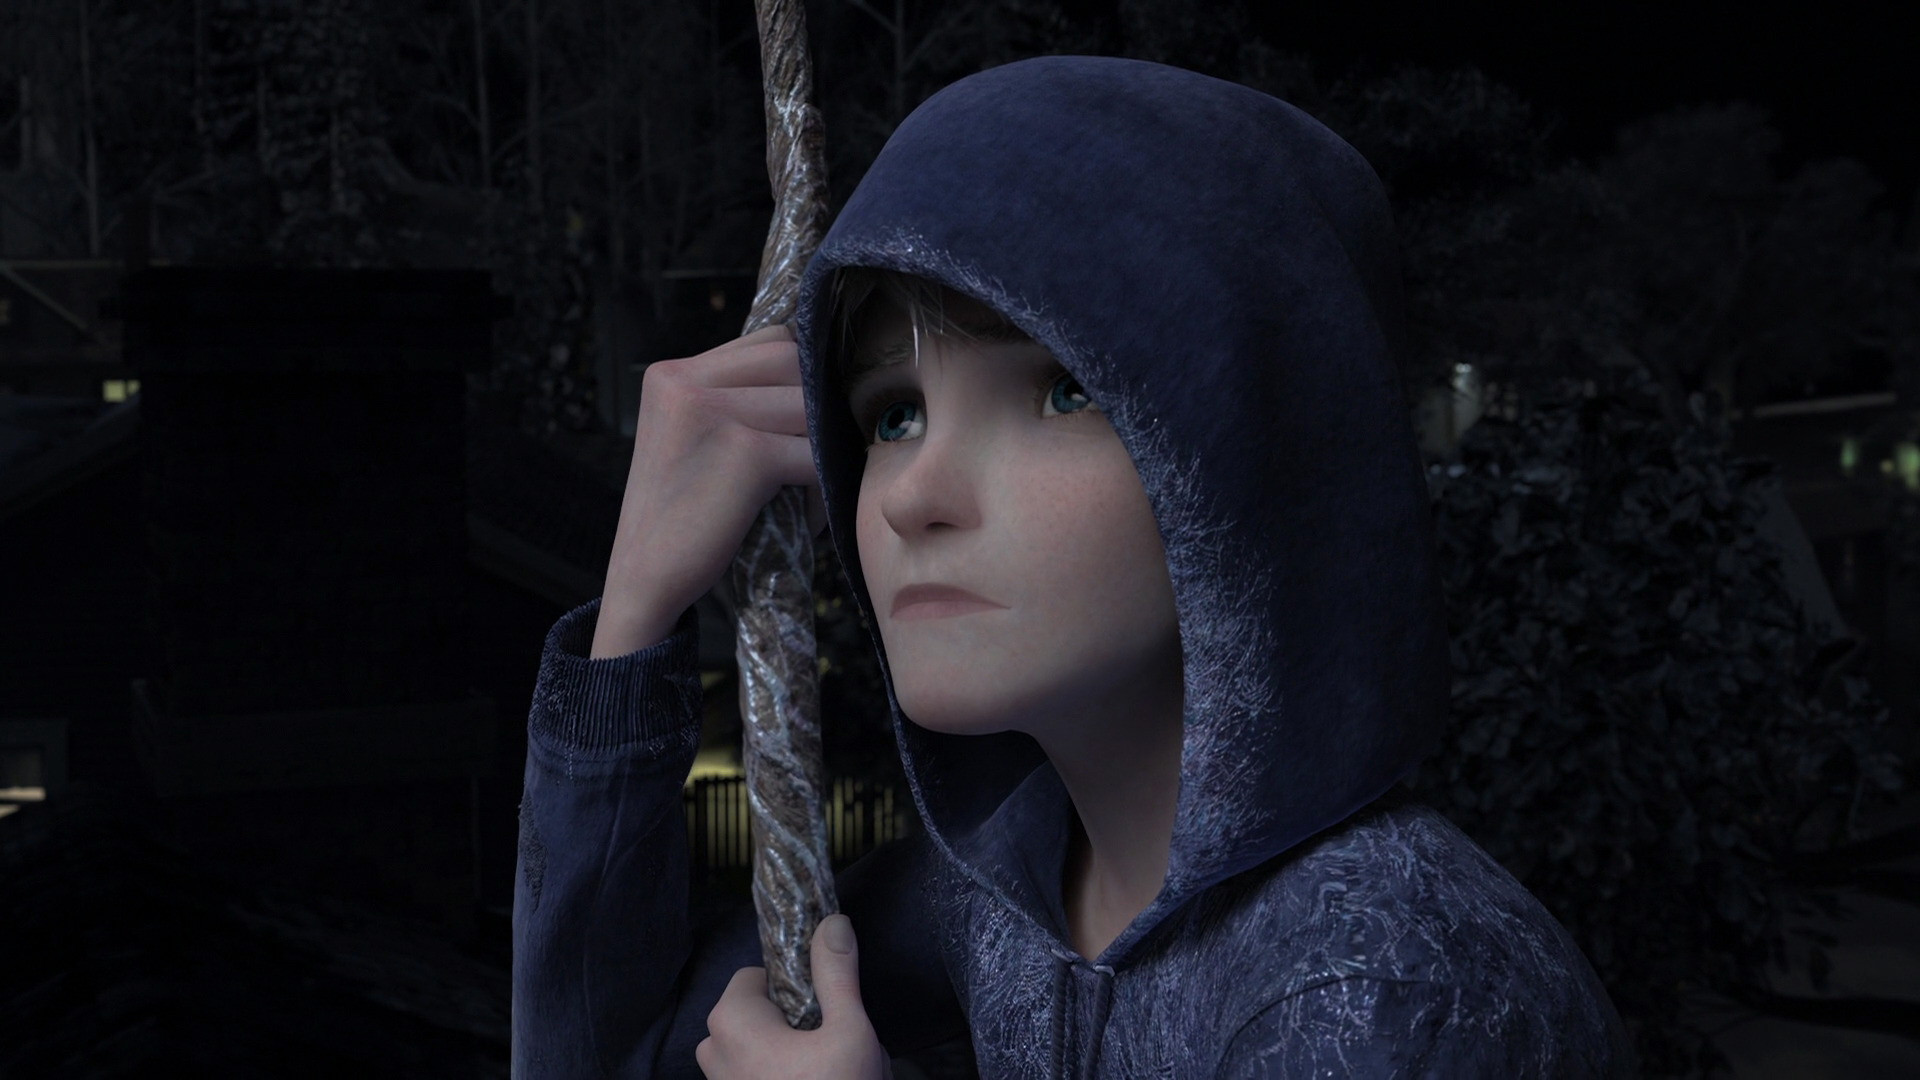 Jack frost wallpapers 66 images 1920x1080 rise guardians disneyscreencaps 10450g thecheapjerseys Gallery